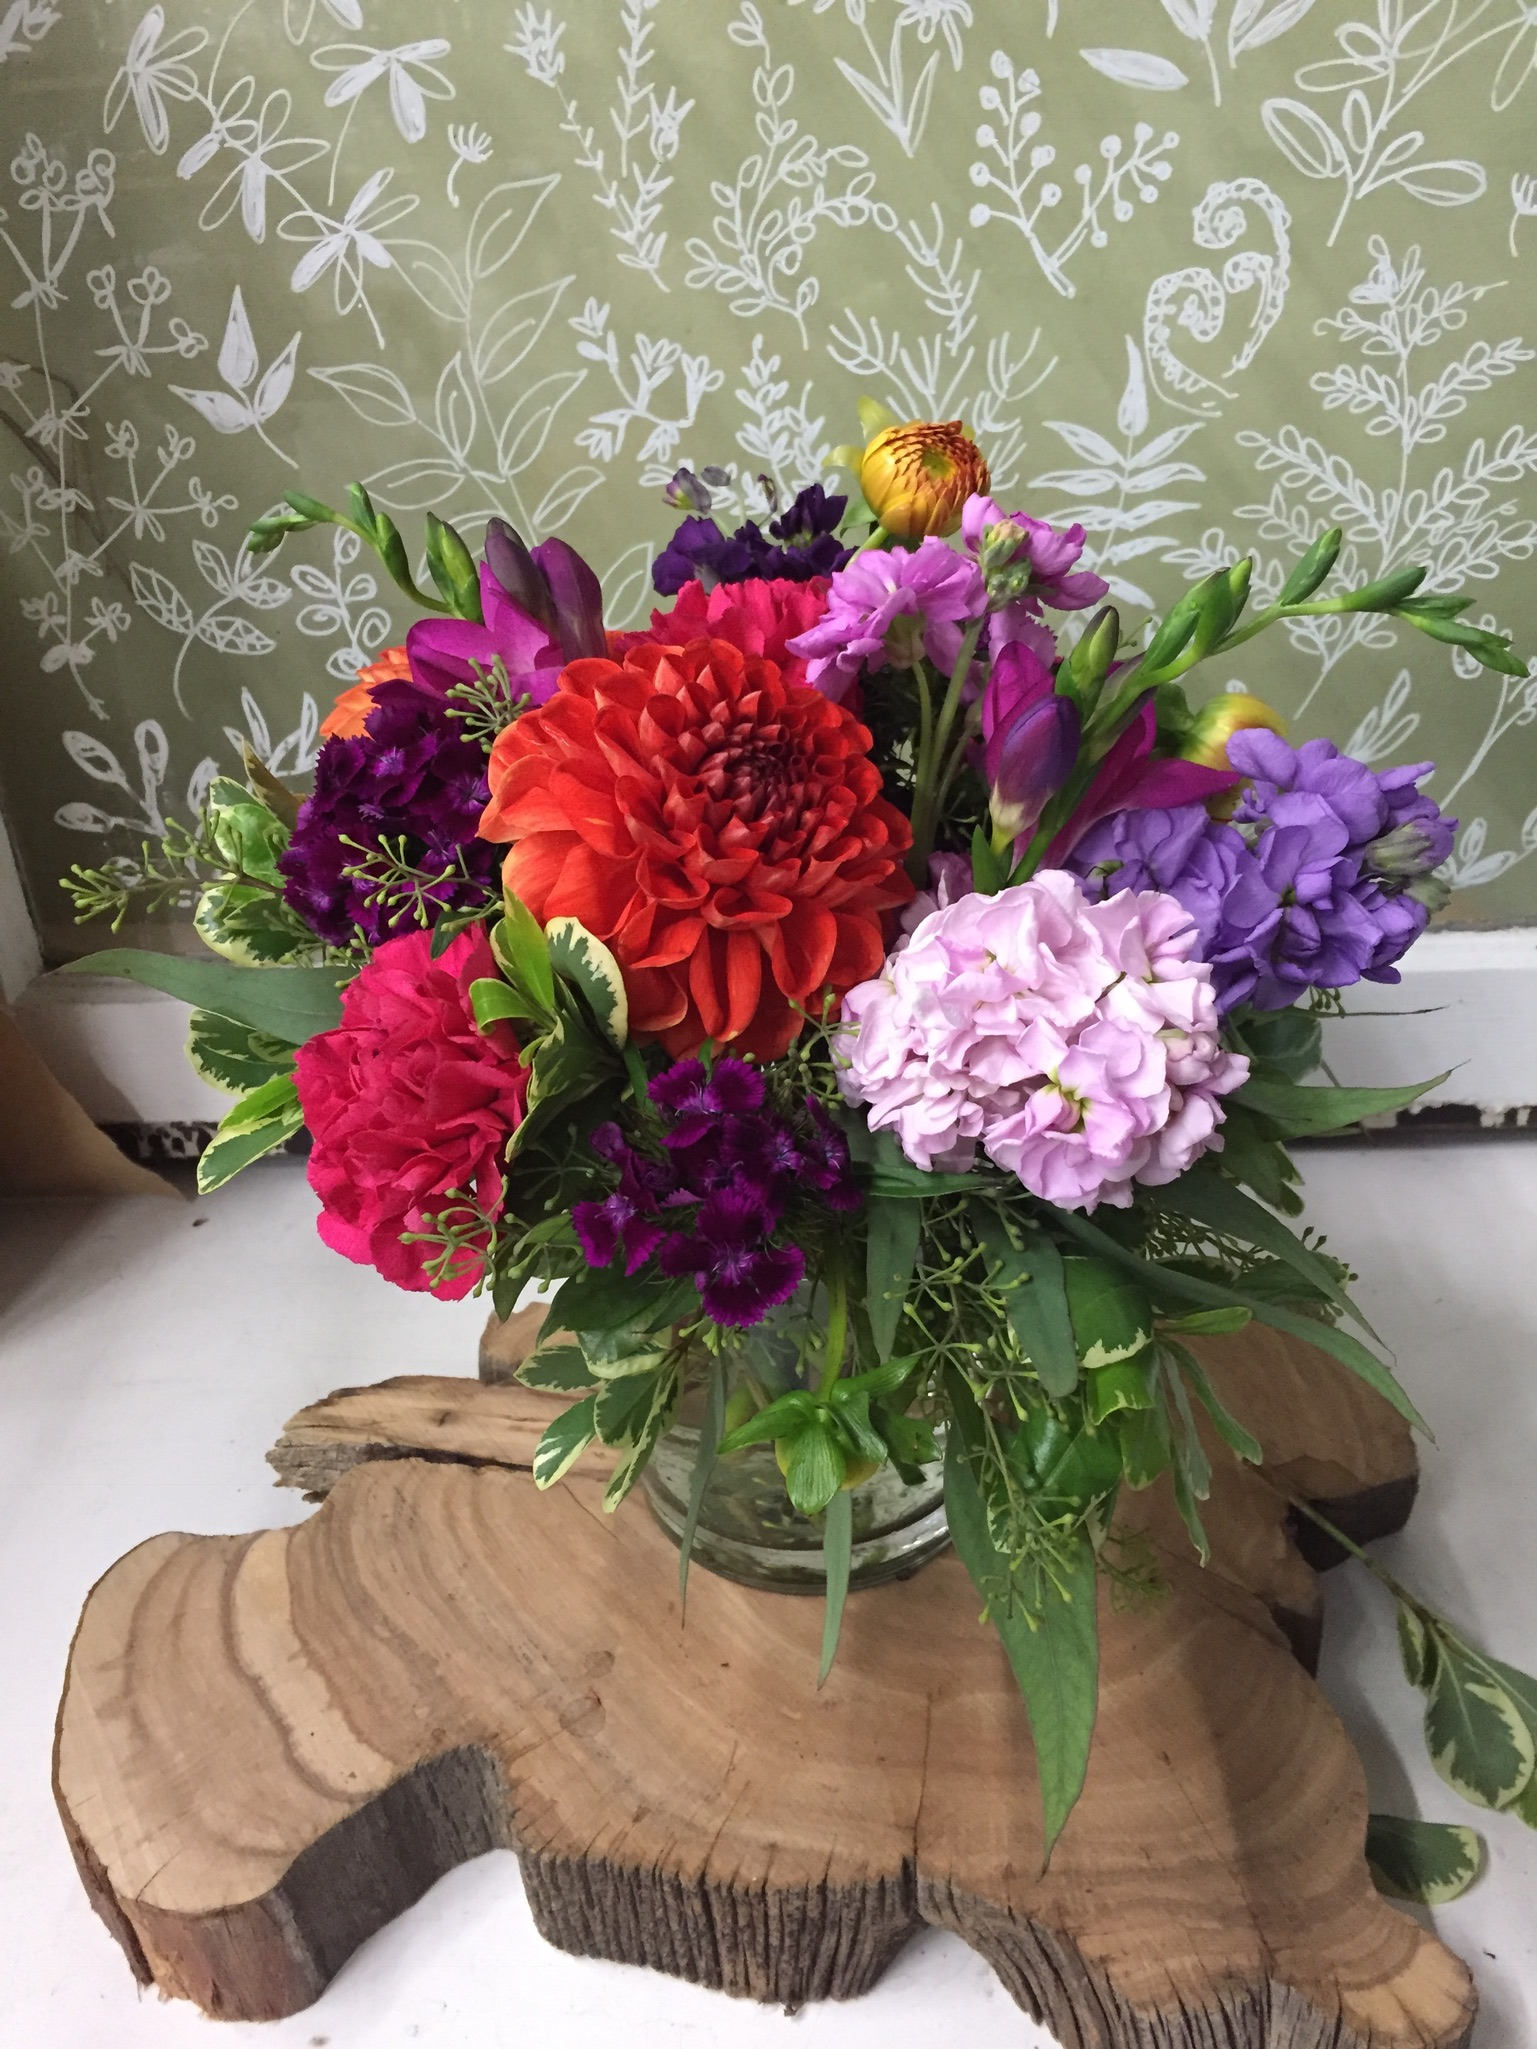 2.Summer contrast bouquet with dahlia